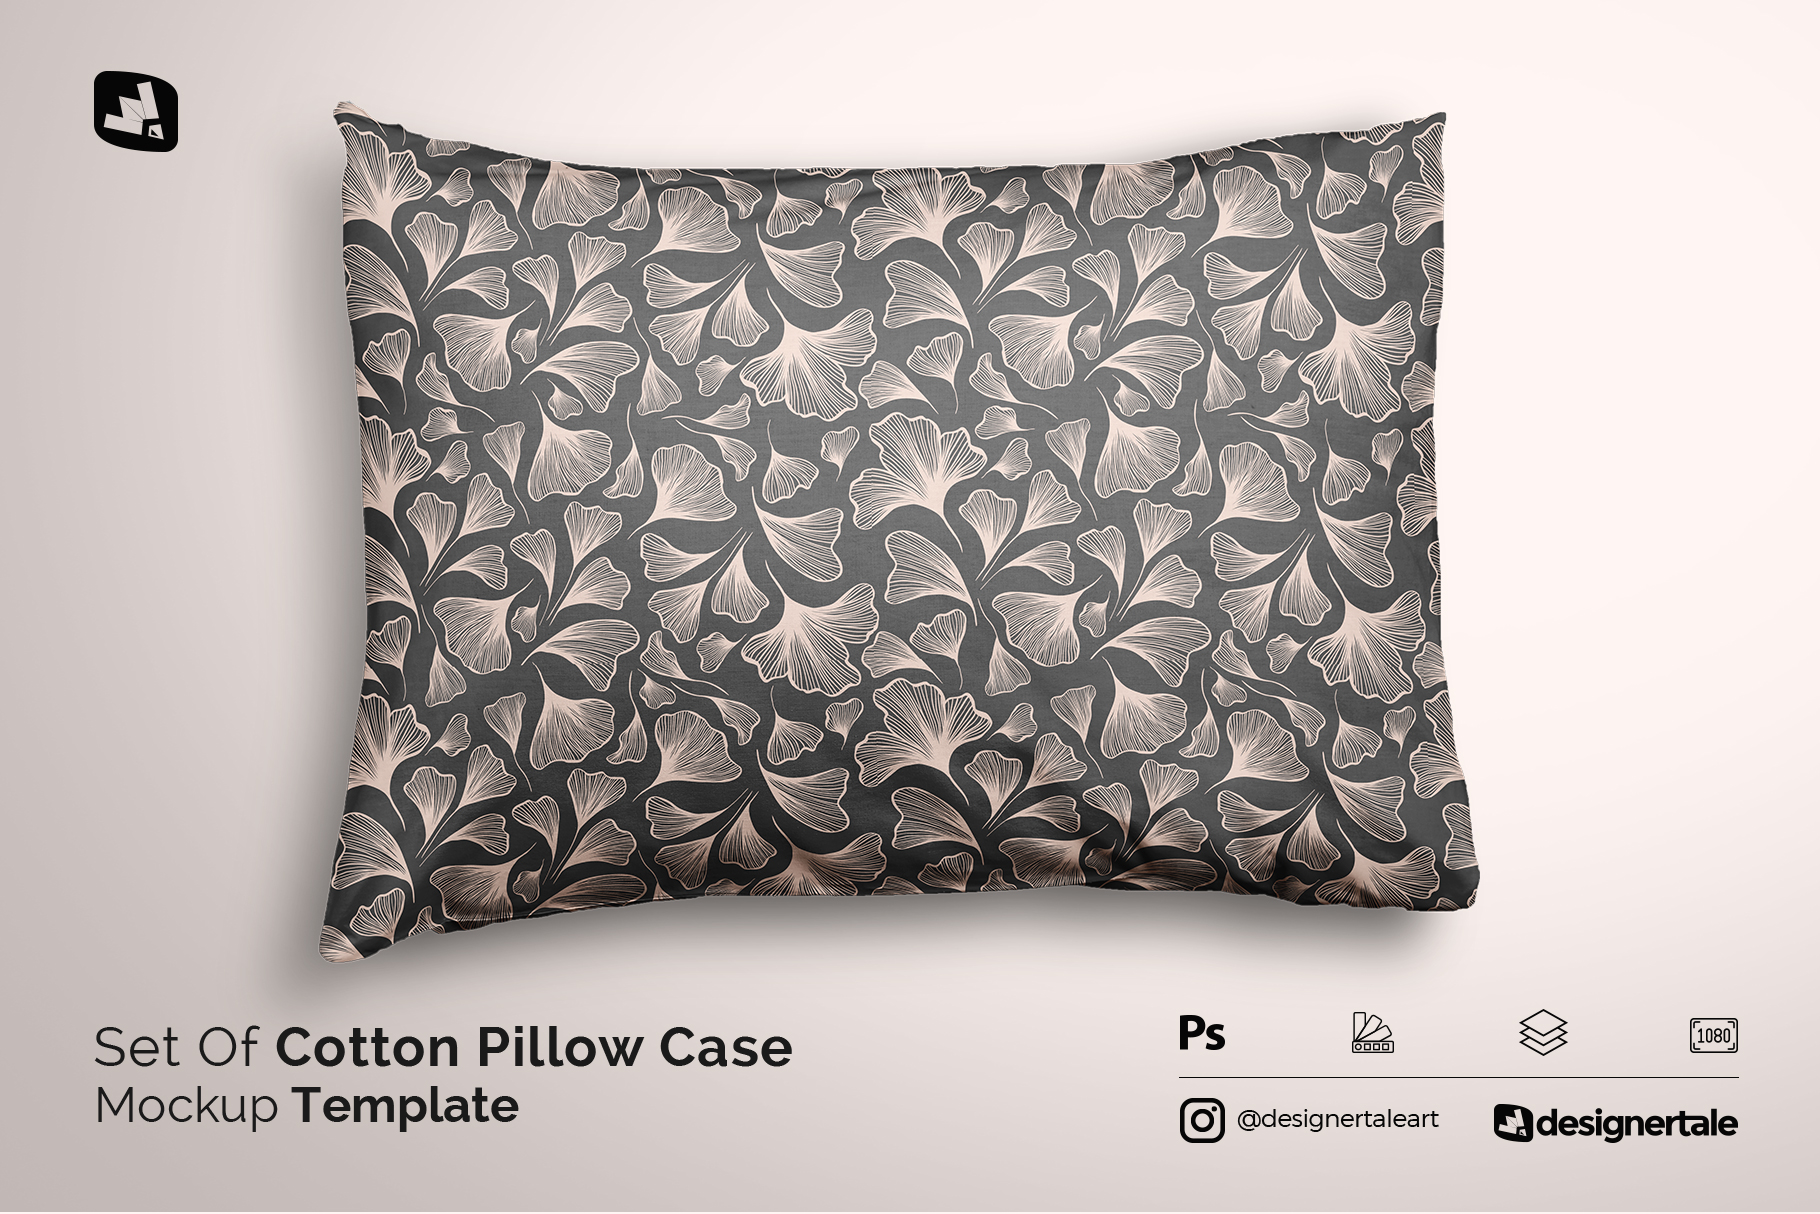 set of cotton pillow case mockup